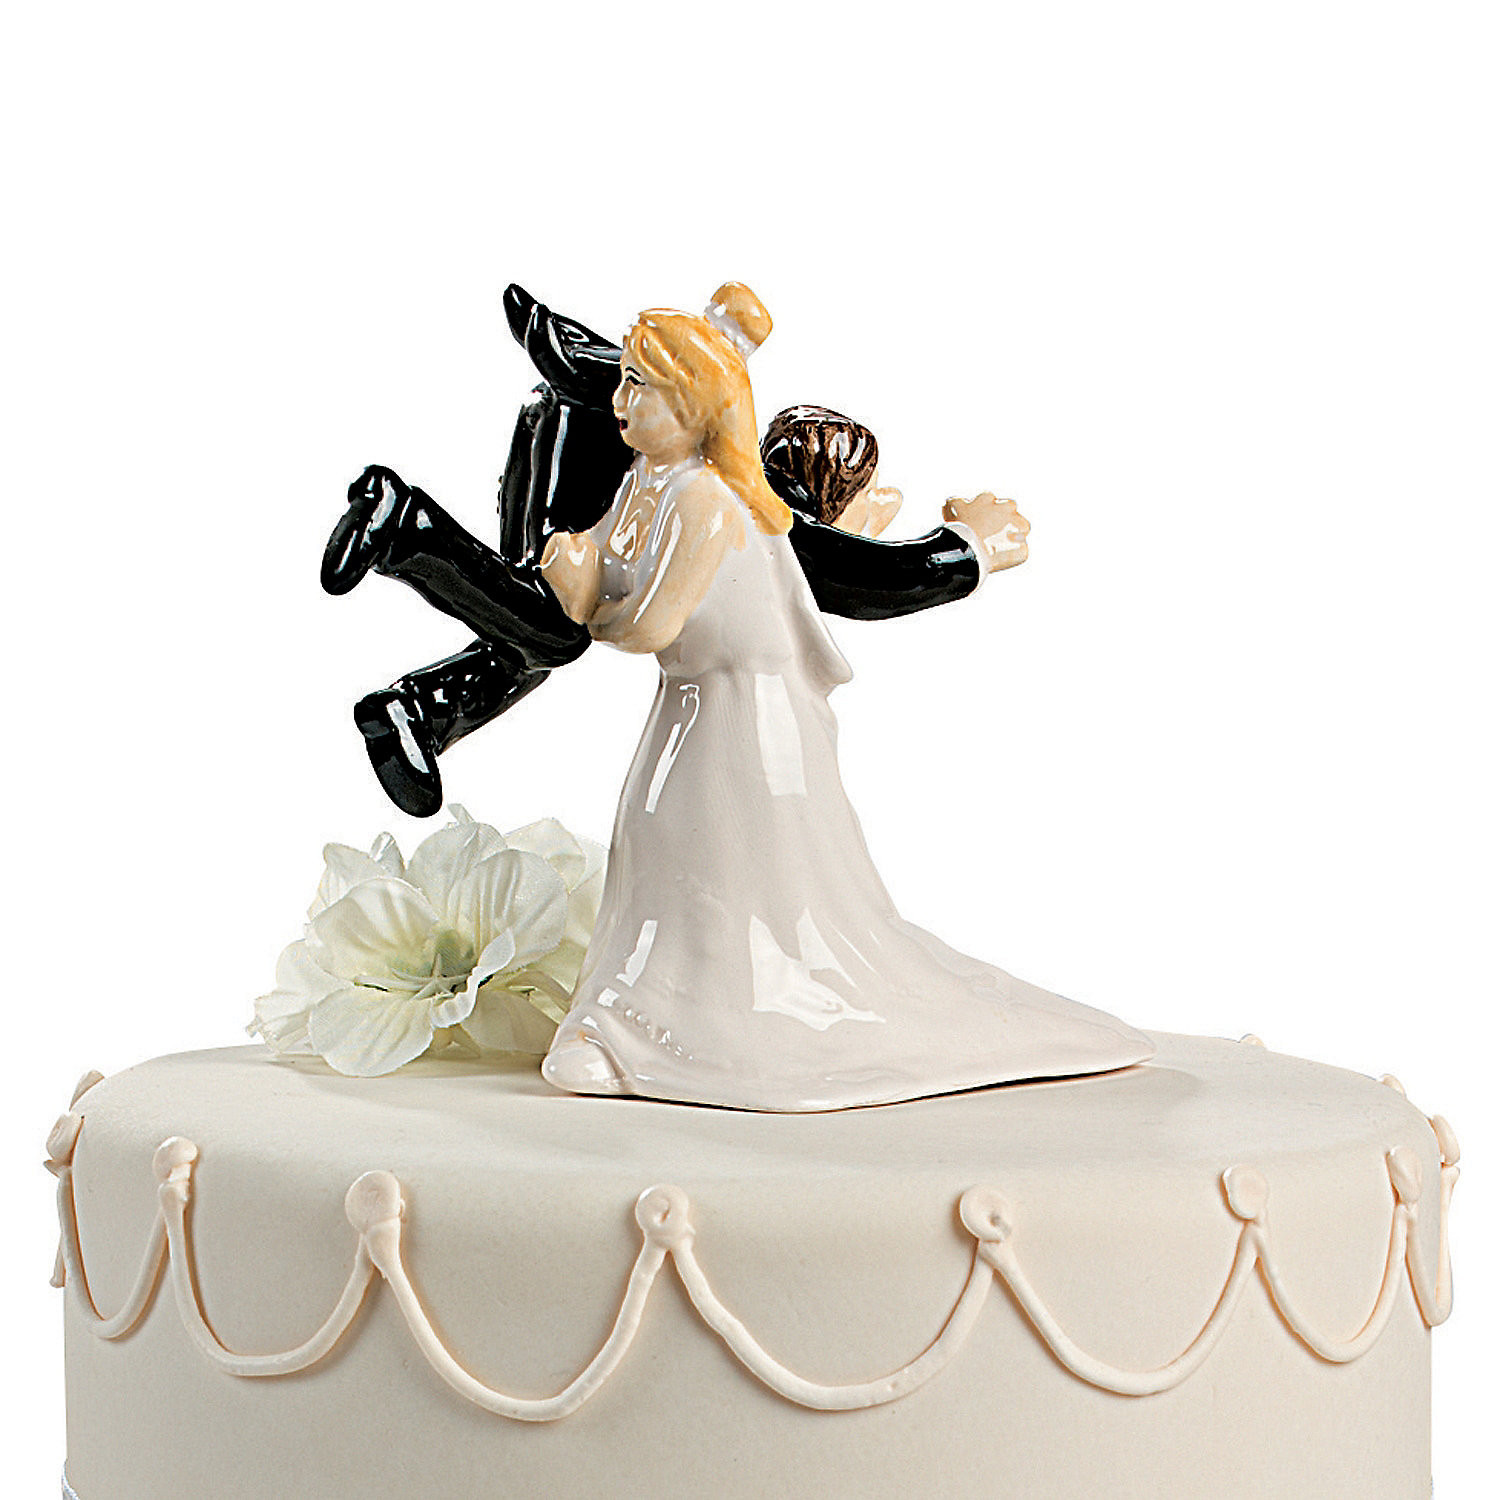 Funny Cake Toppers For Wedding Cakes  Interracial wedding cake toppers funny idea in 2017